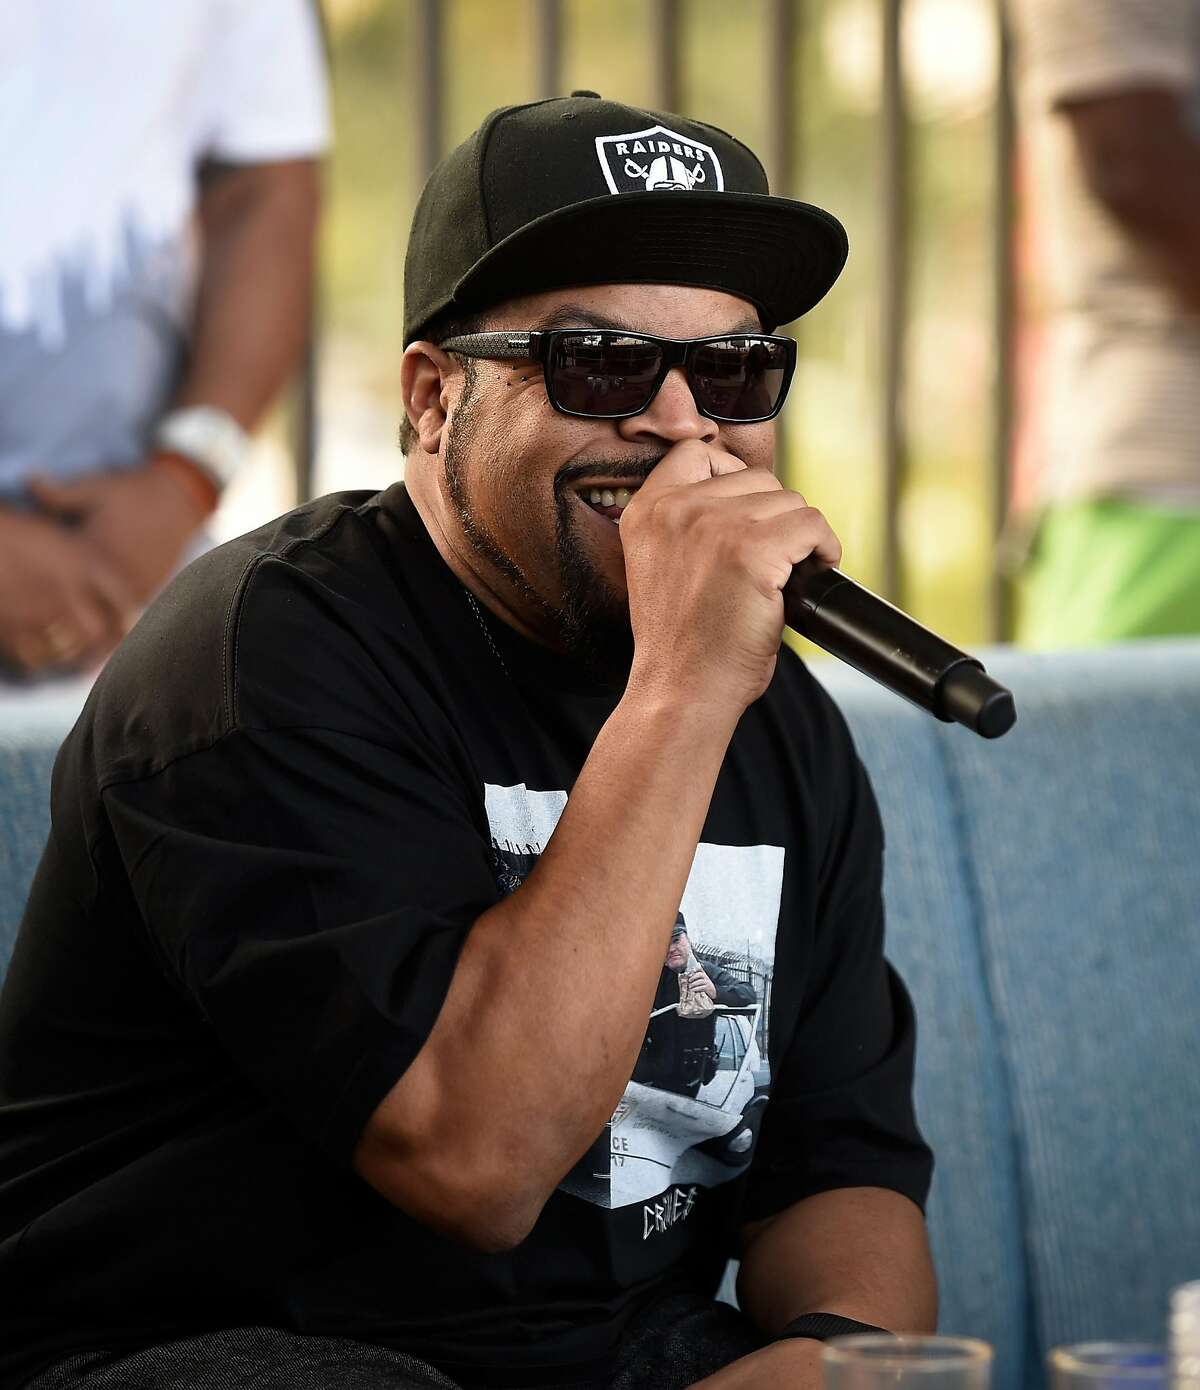 LAS VEGAS, NV - MAY 06: Rapper Ice Cube performs at Daylight Beach Club at the Mandalay Bay Resort and Casino on May 6, 2017 in Las Vegas, Nevada. (Photo by David Becker/Getty Images for Daylight Beach Club)